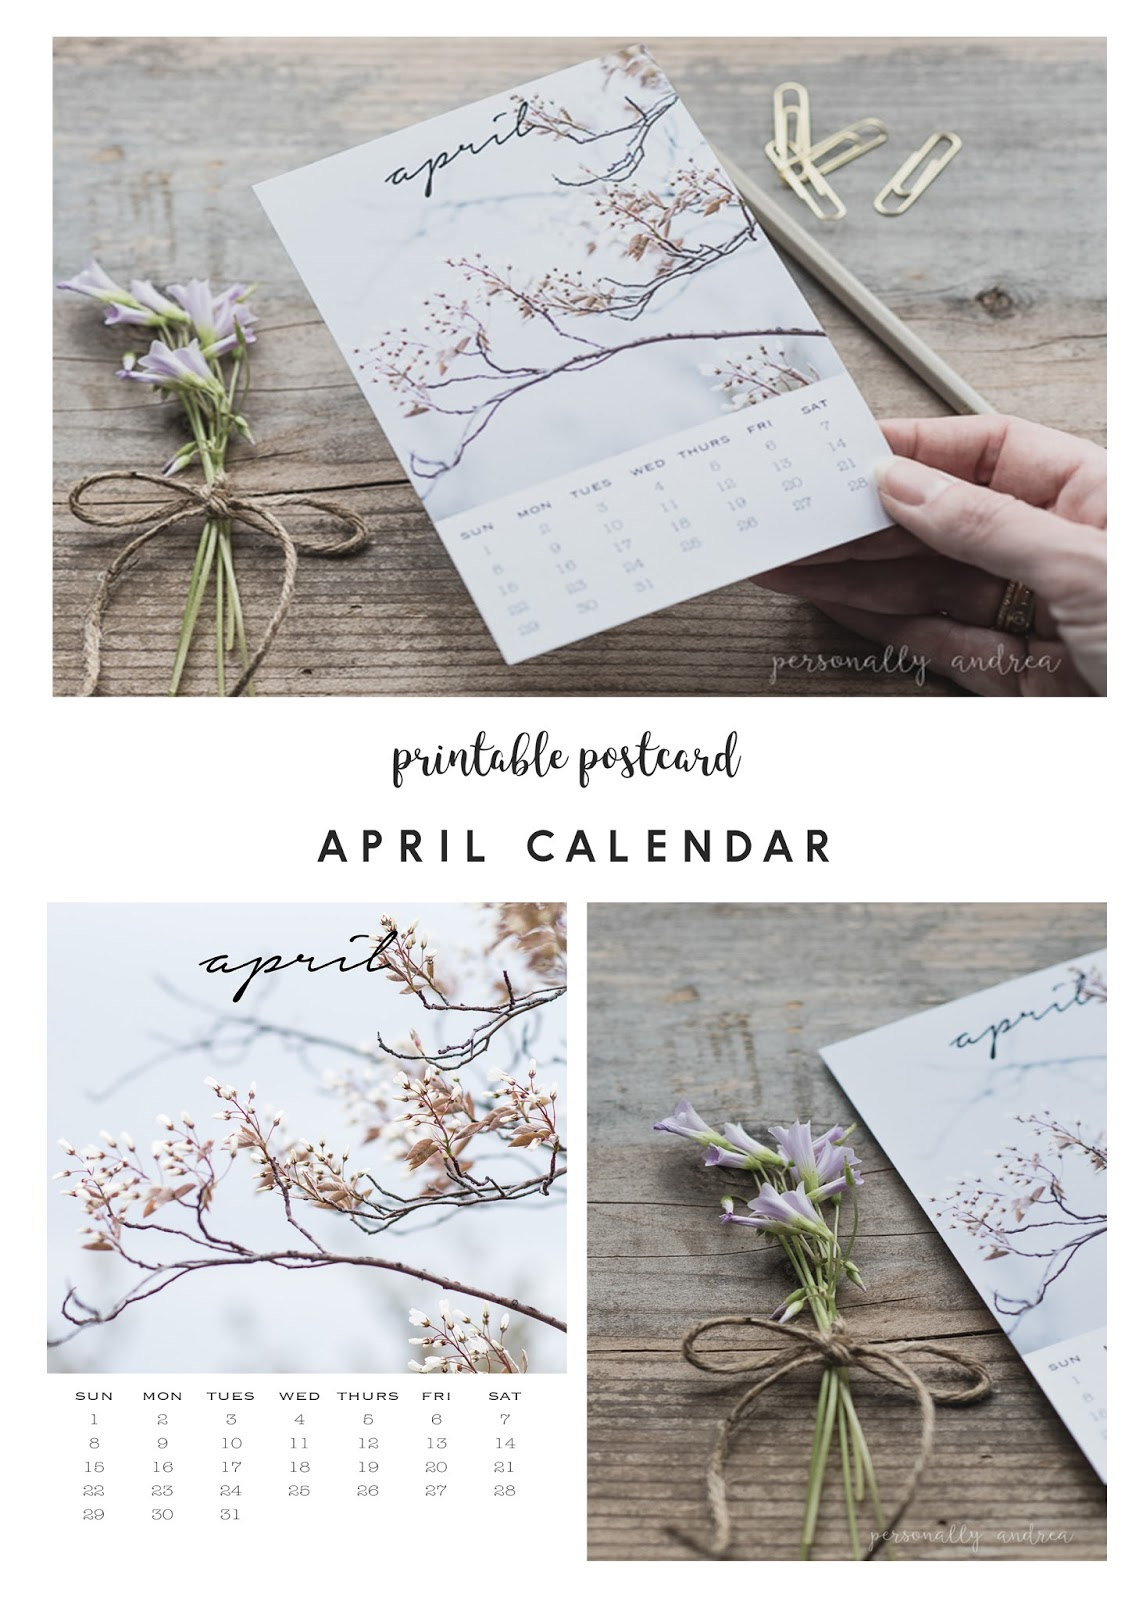 A printable download of a 4 x 6 photo calendar postcard for April | personallyandrea.com